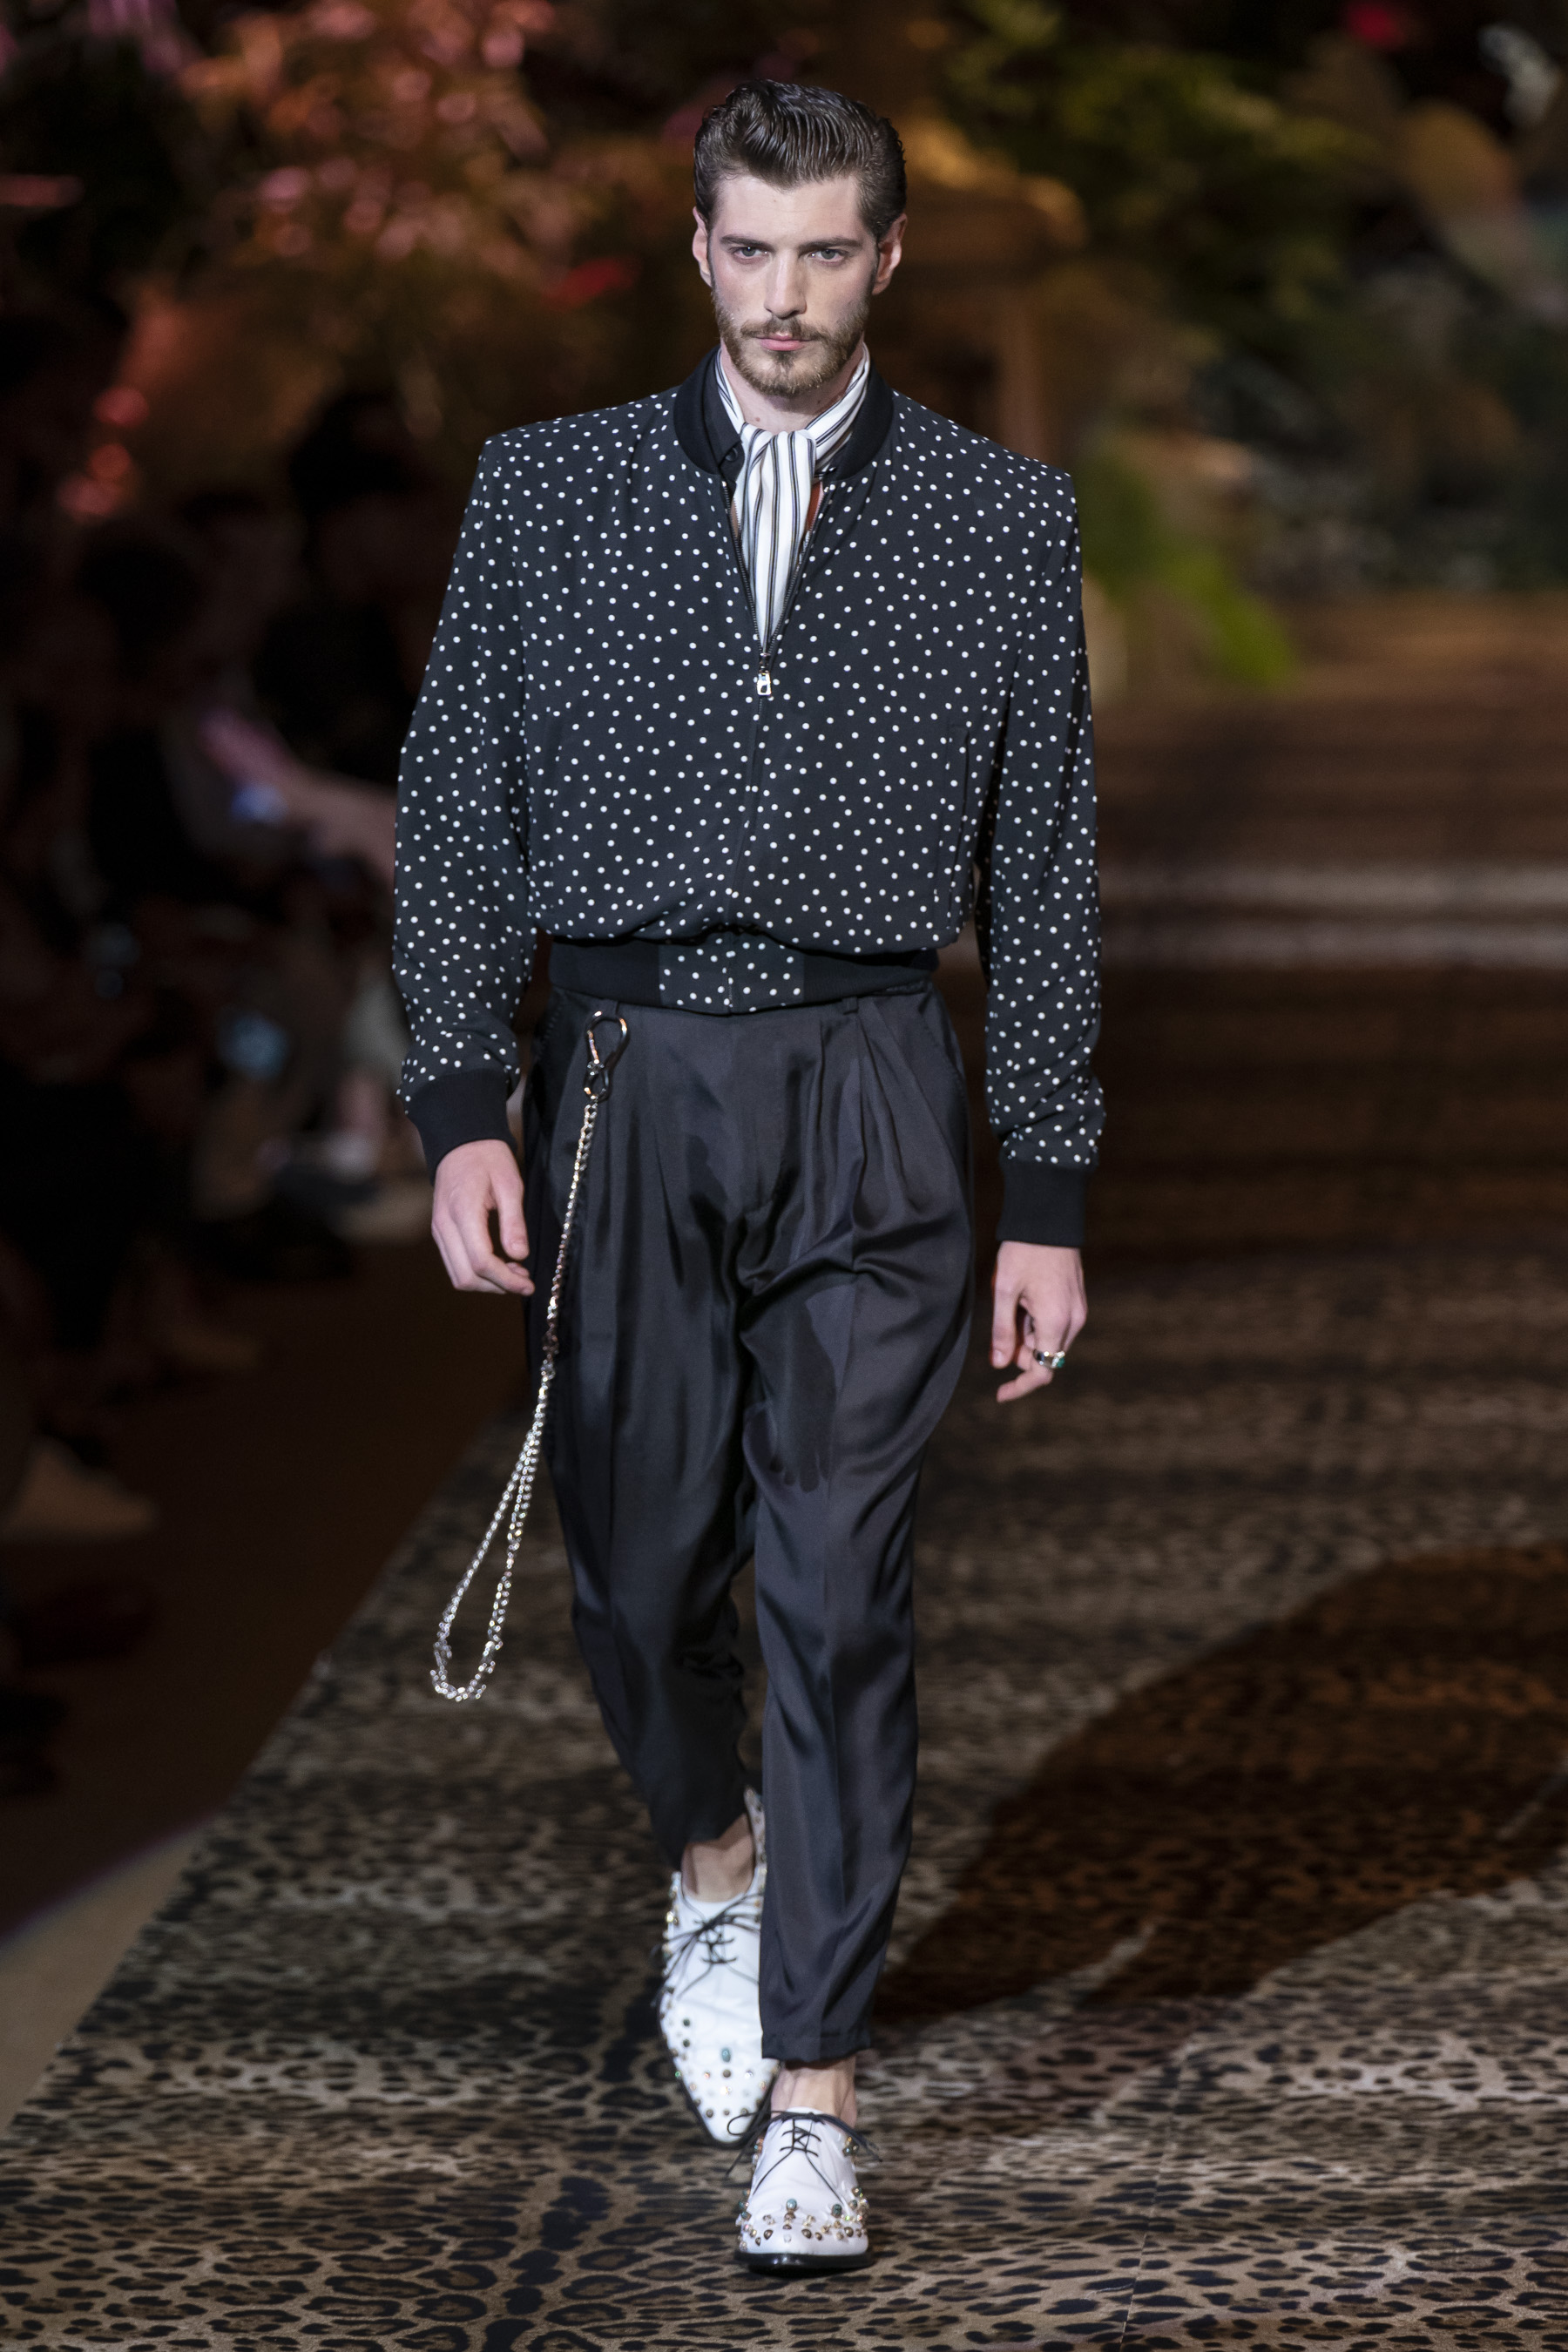 Dolce & Gabbana Spring 2020 Men's Fashion Show